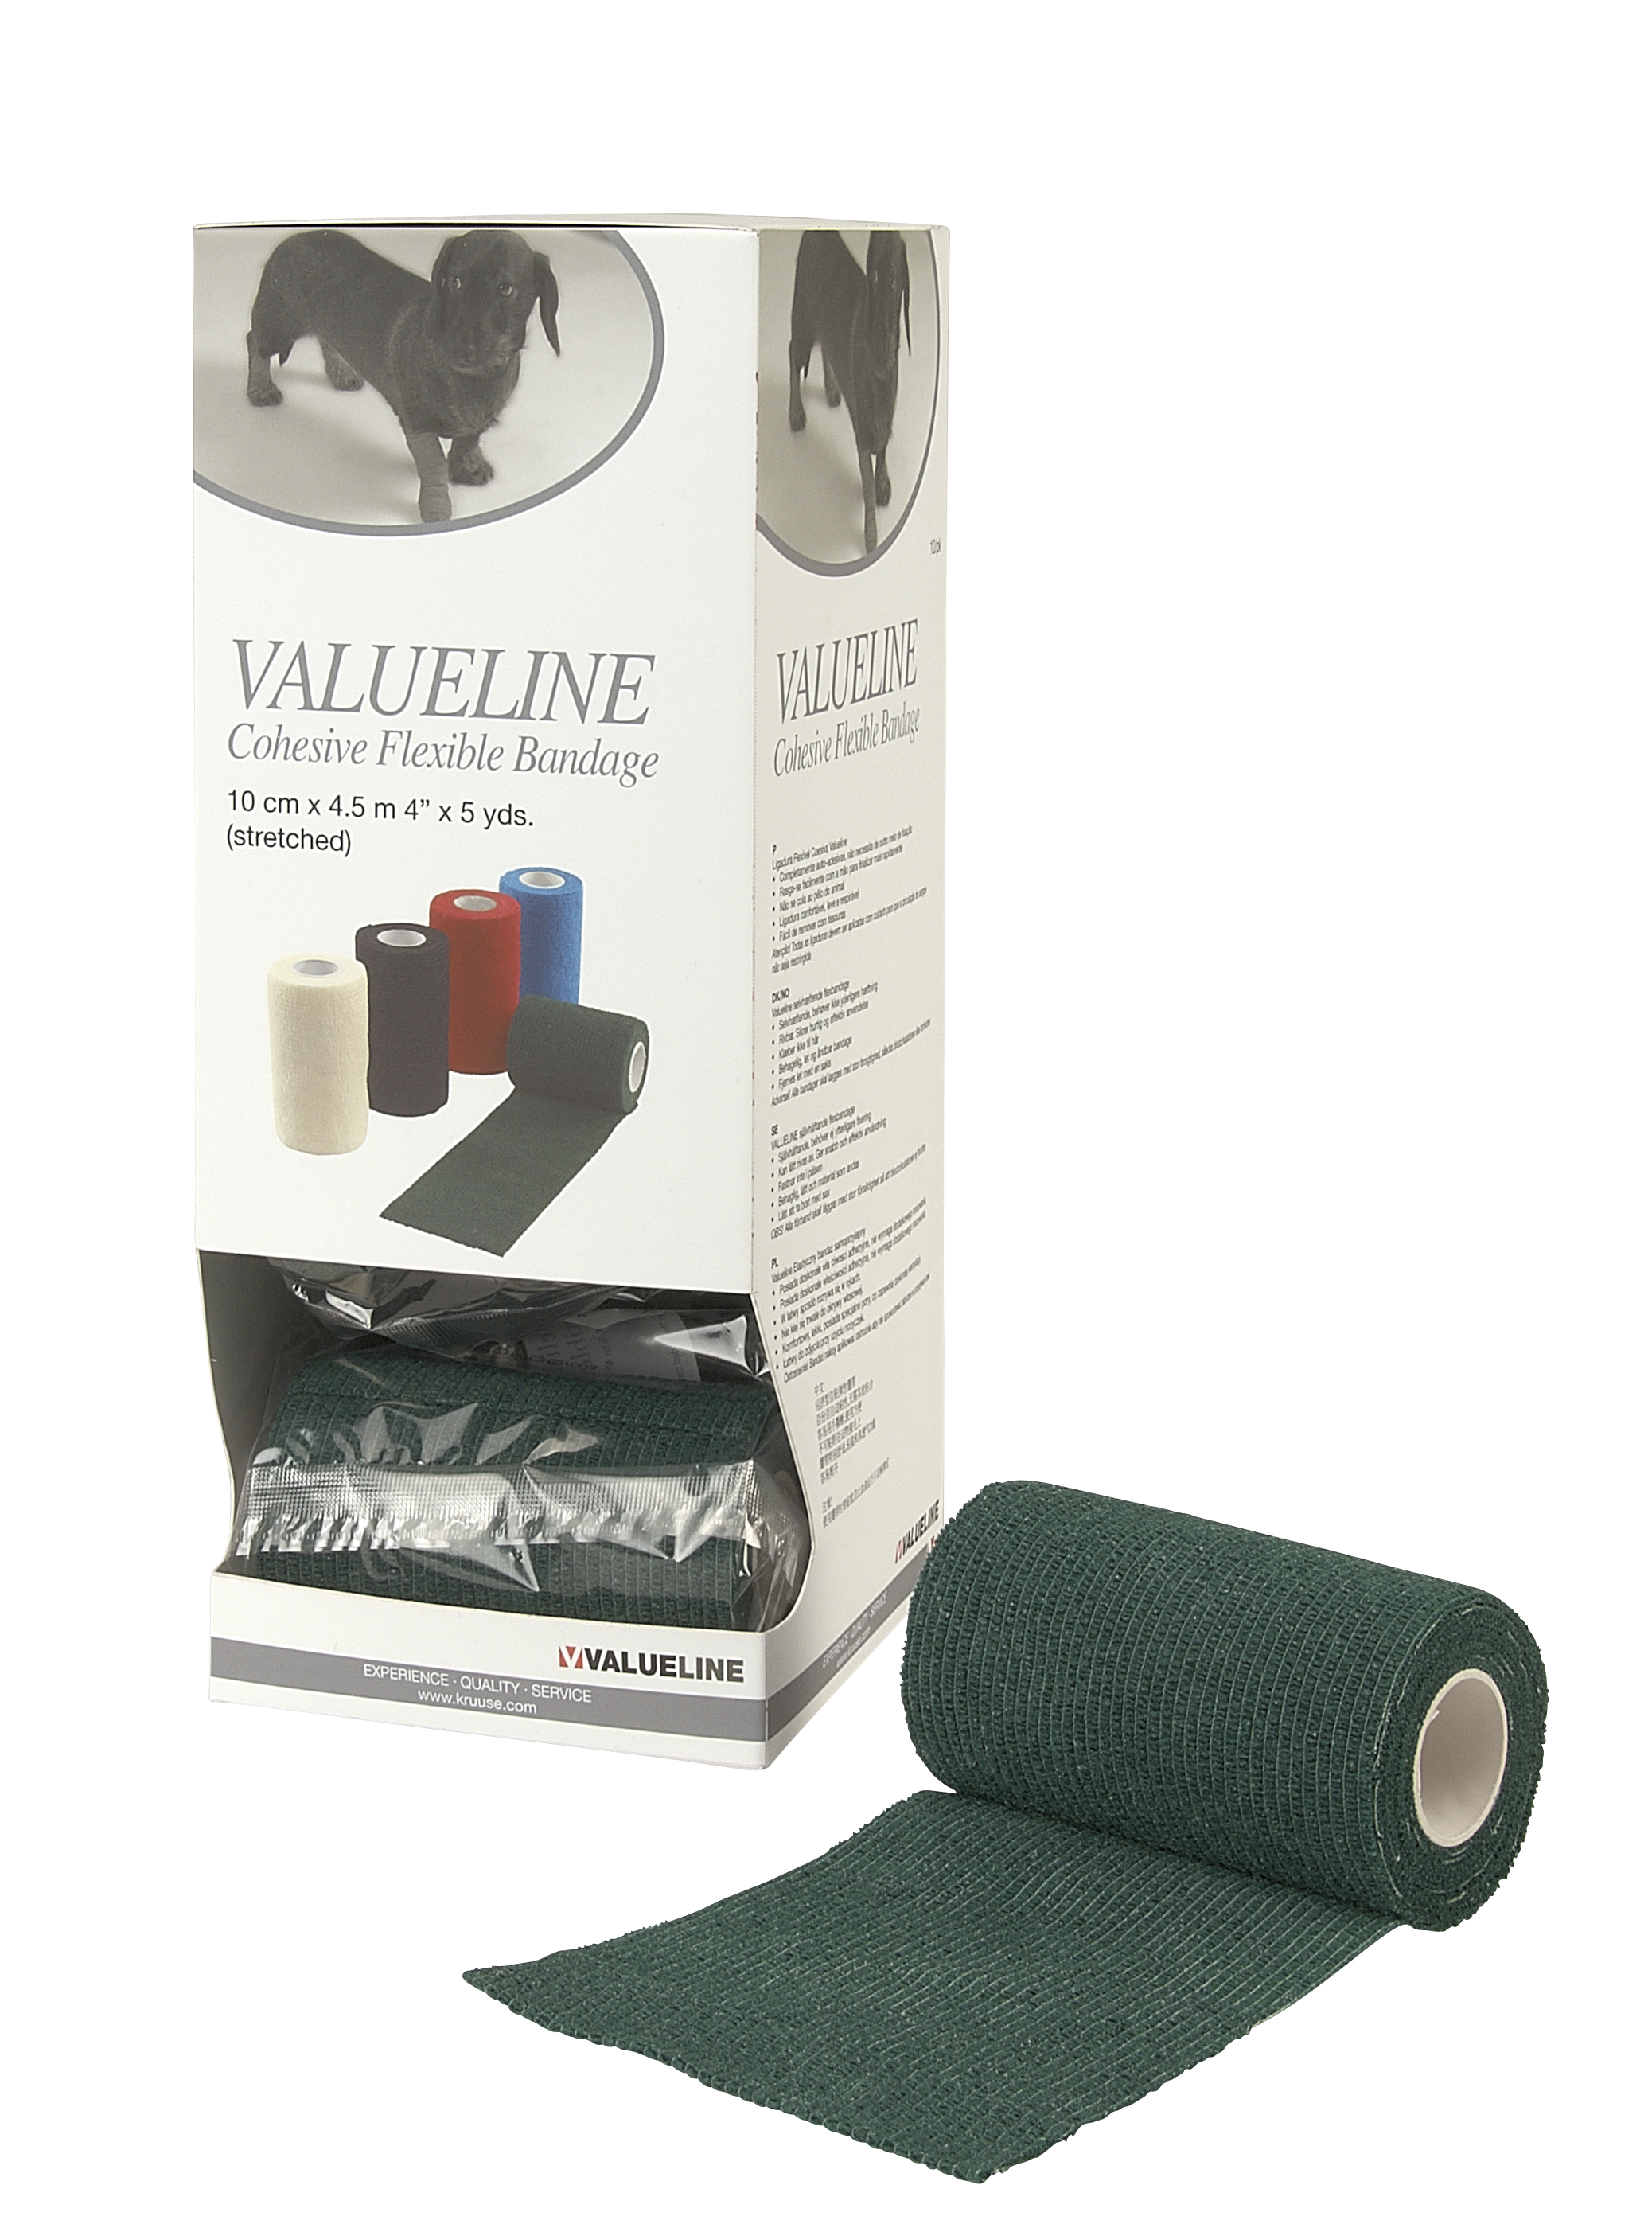 VALUELINE self-adhesive flex bandage 10cm x 4,5m, green, 10/pk